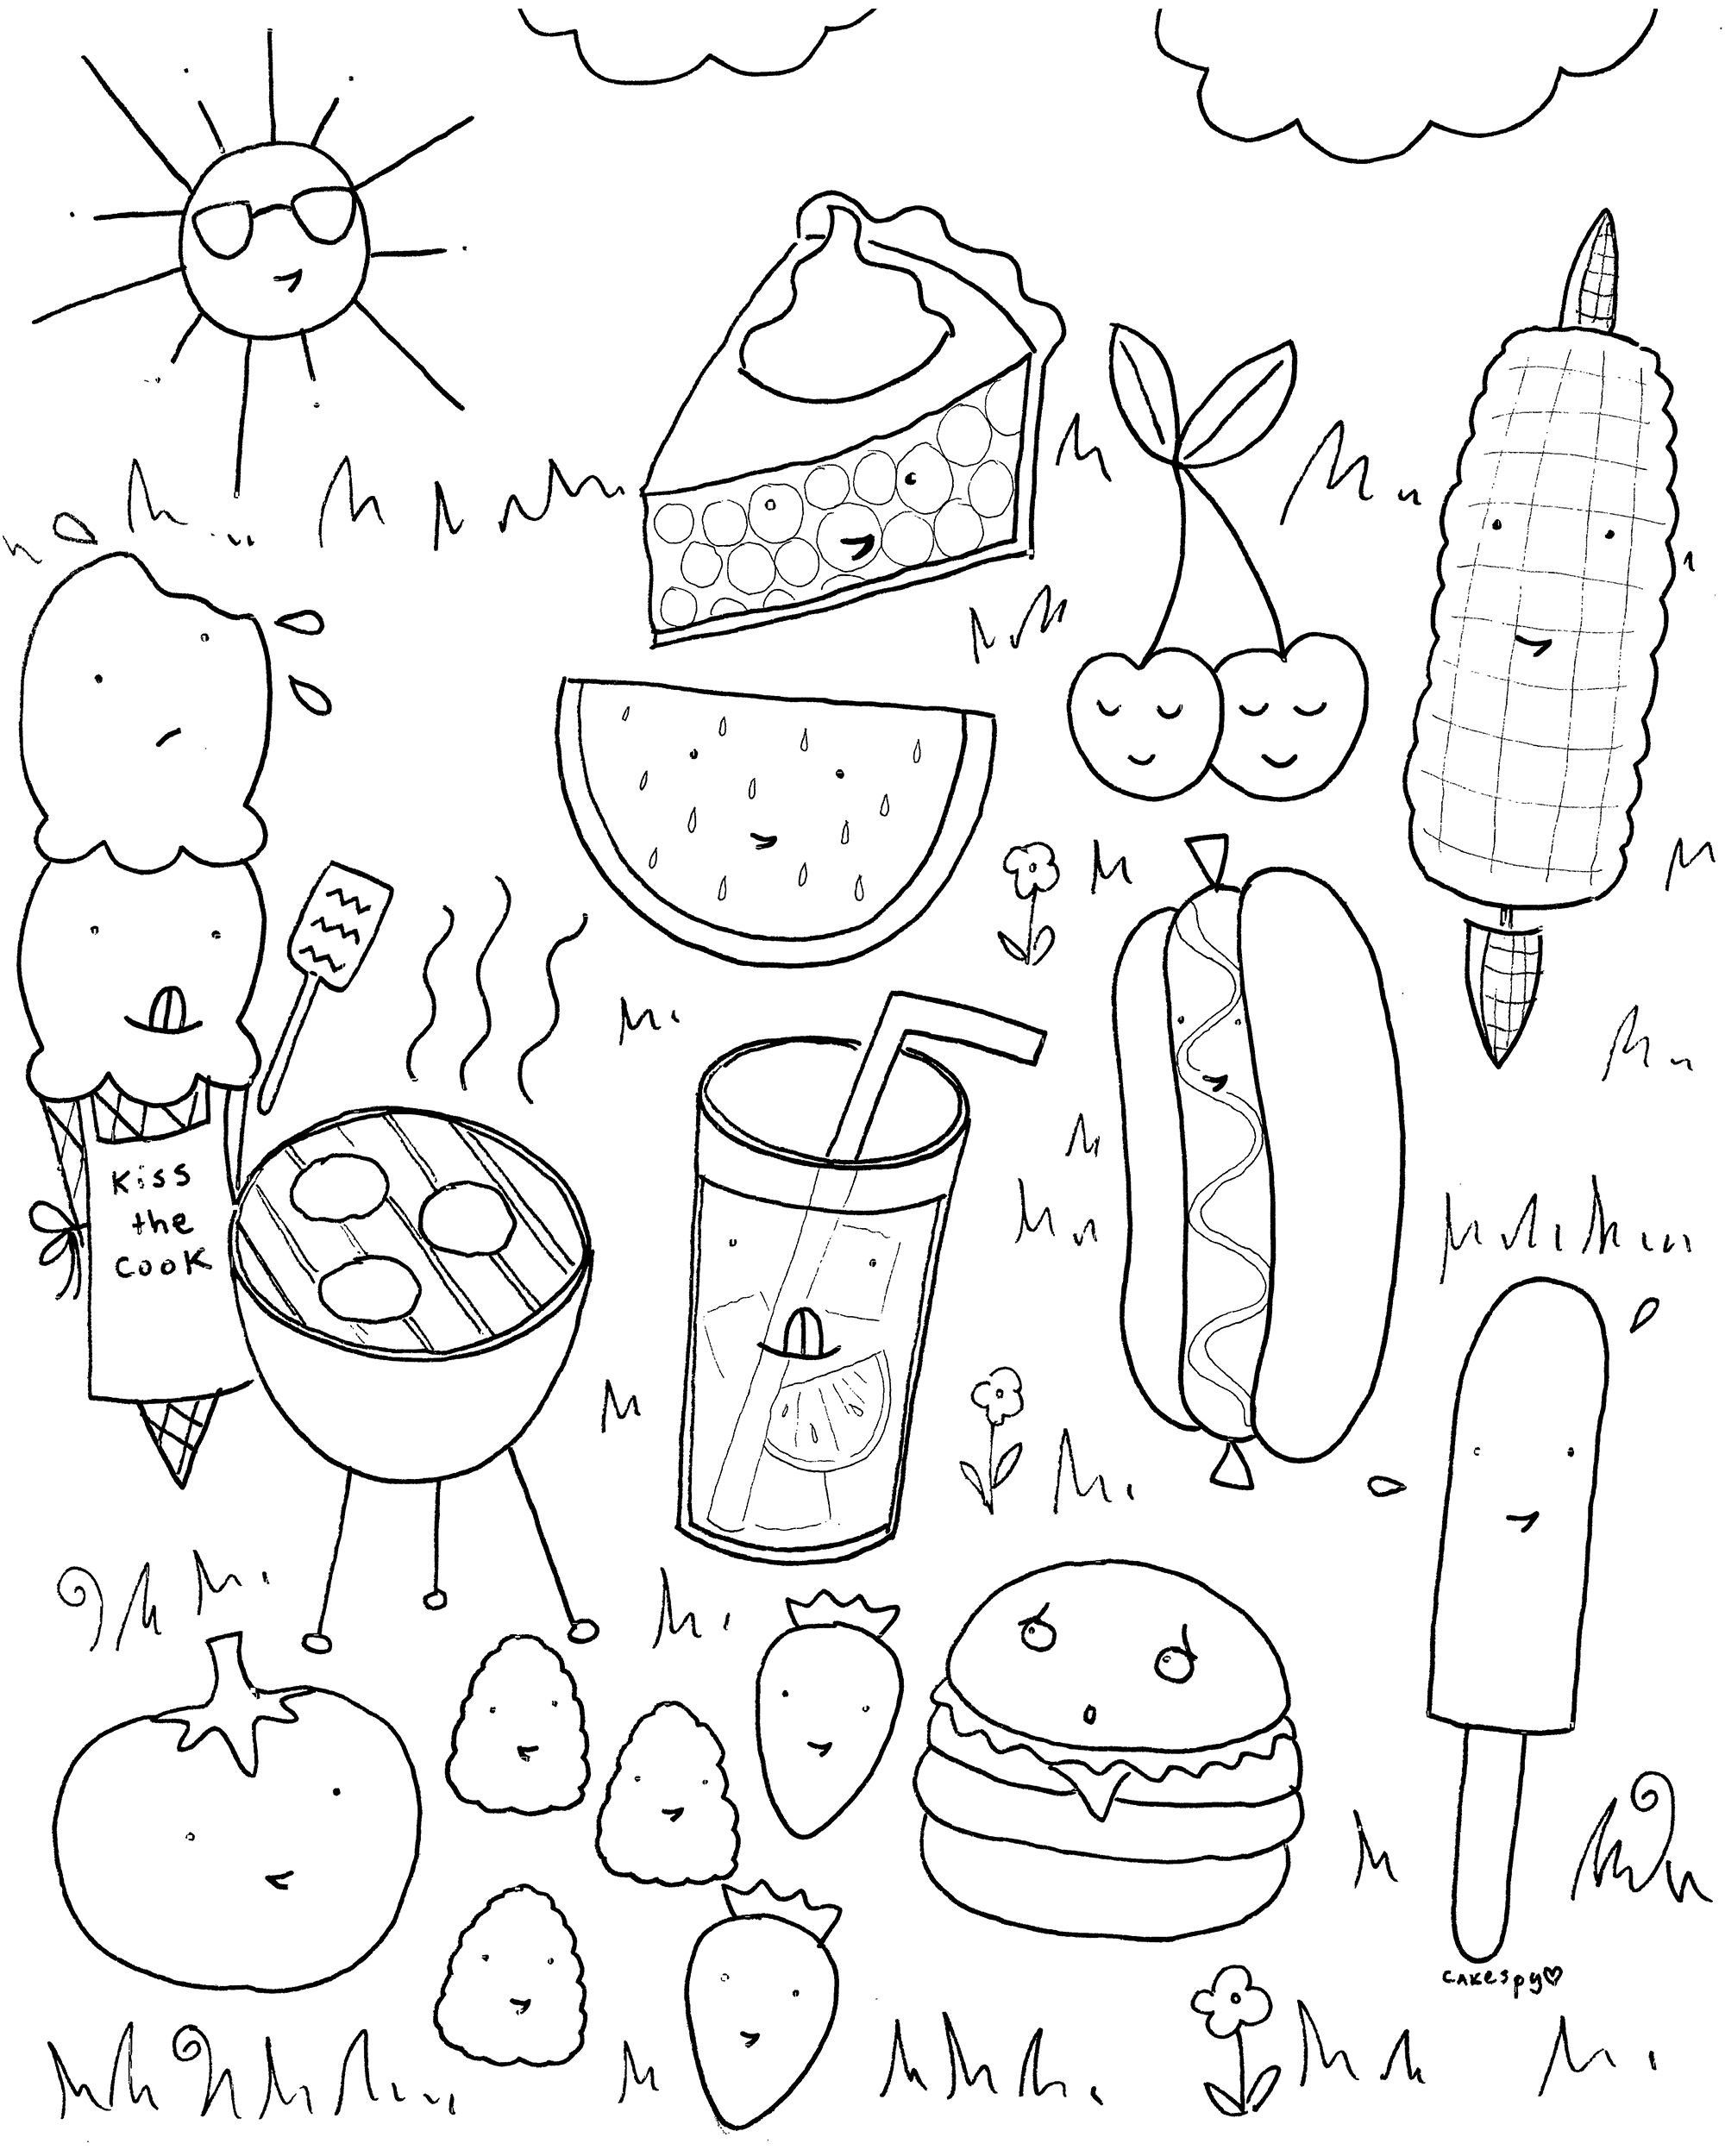 Healthy Food Coloring Pages Collection Of Healthy Food Coloring Pages Pdf High Quality Free Davemelillo Com Cool Coloring Pages Summer Coloring Sheets Spring Coloring Pages